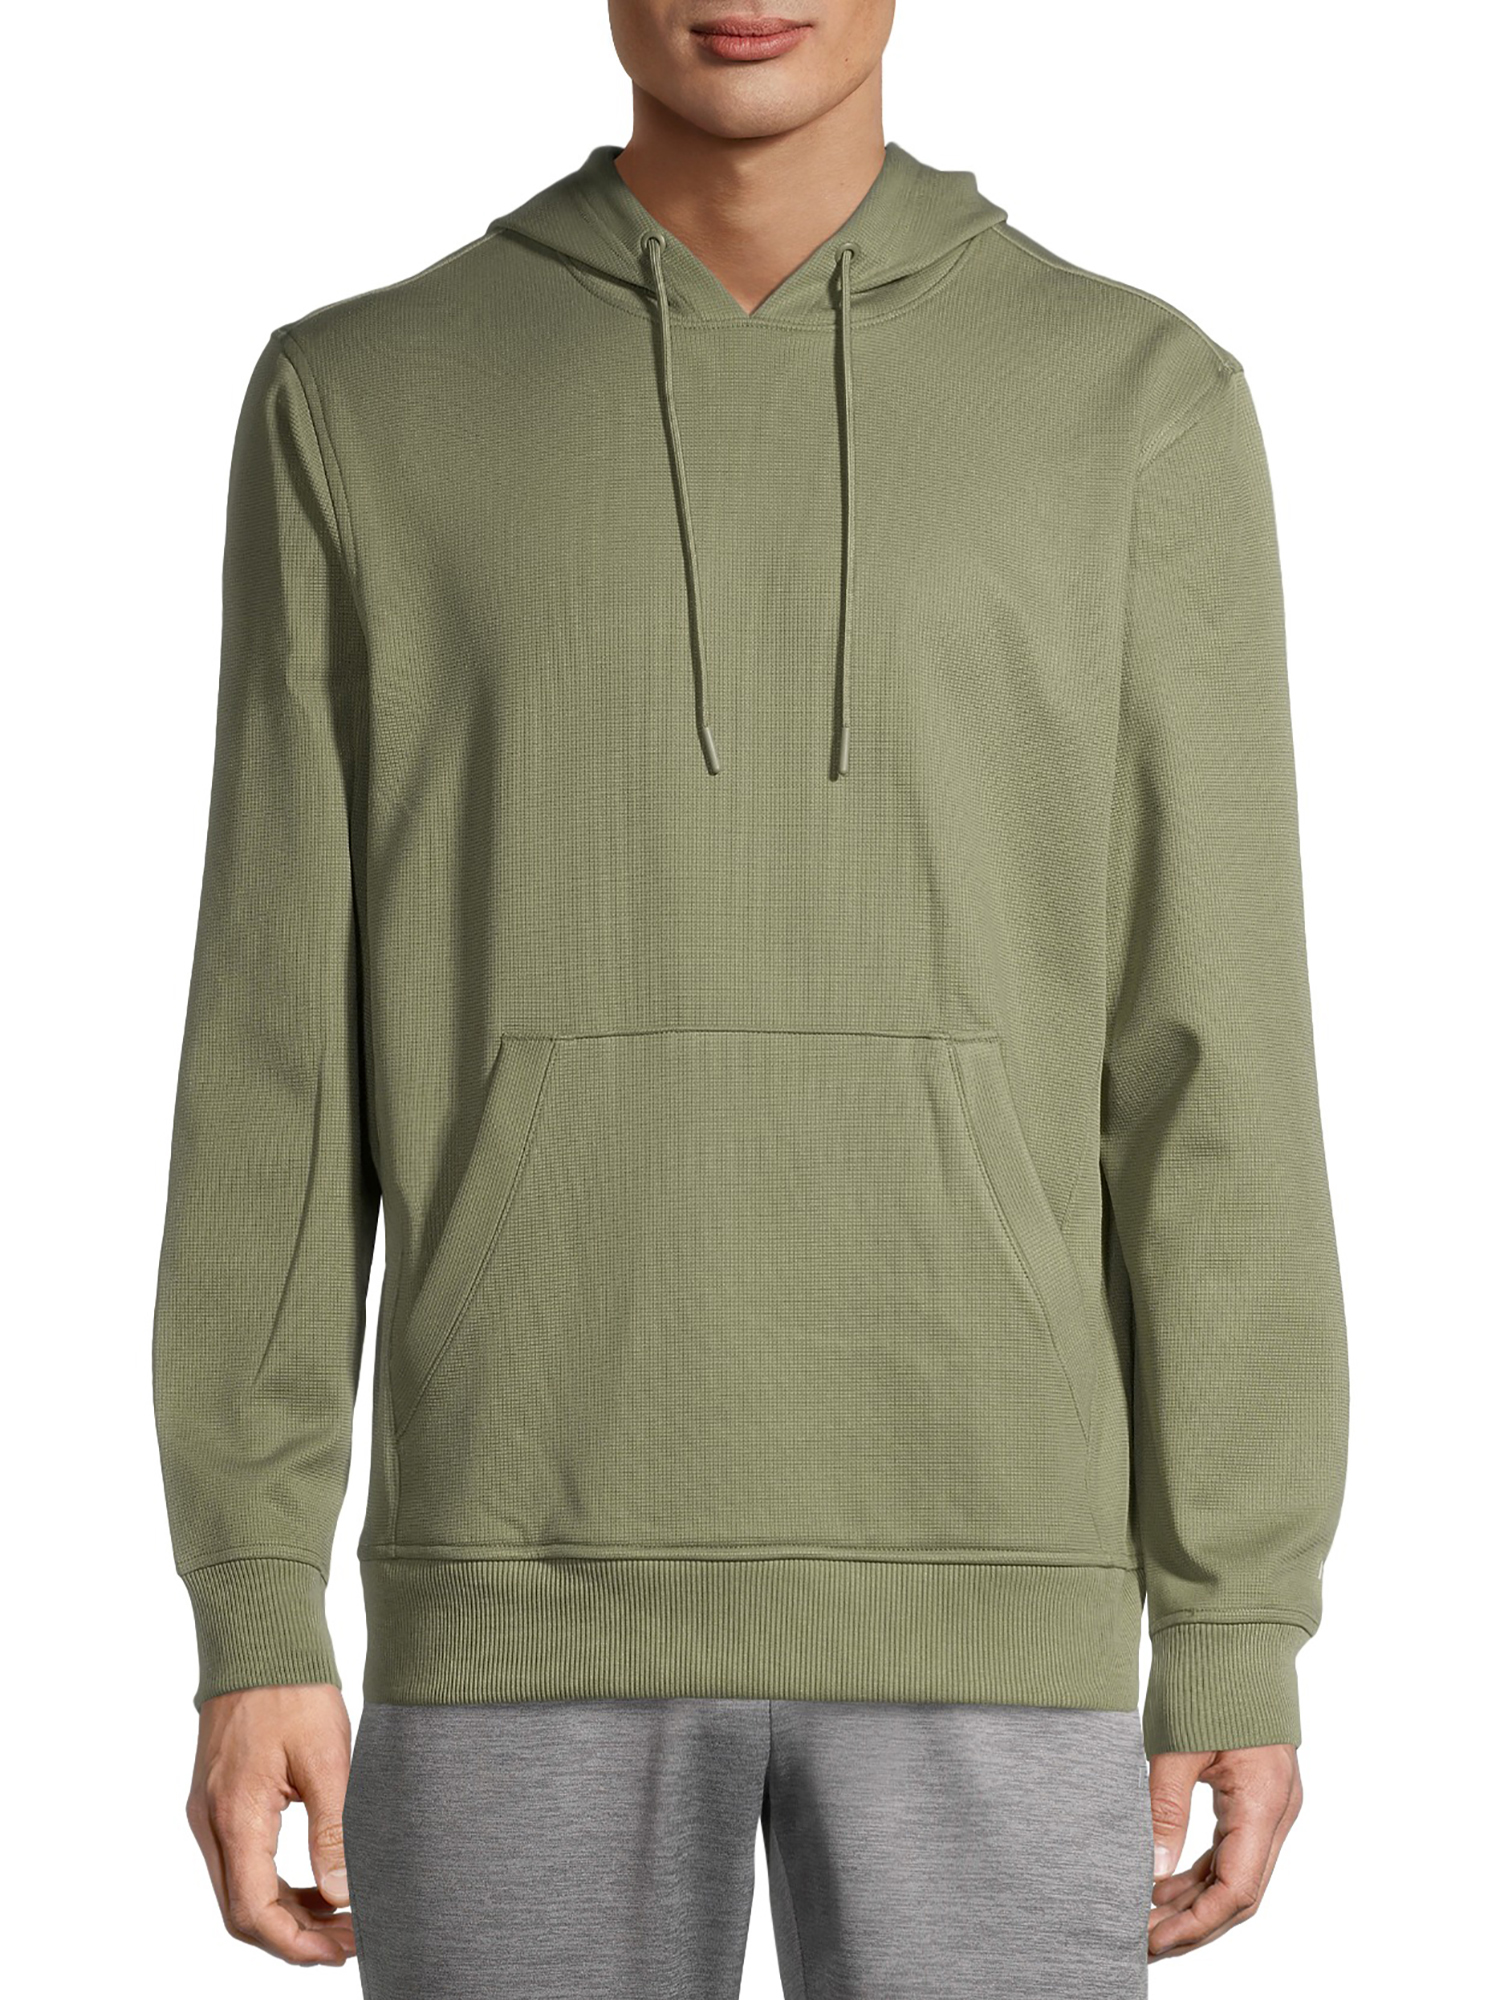 Russell Men's Active Tech Fleece Pullover Hoodie Textured Fleece Fog Size (L/G 42-44)